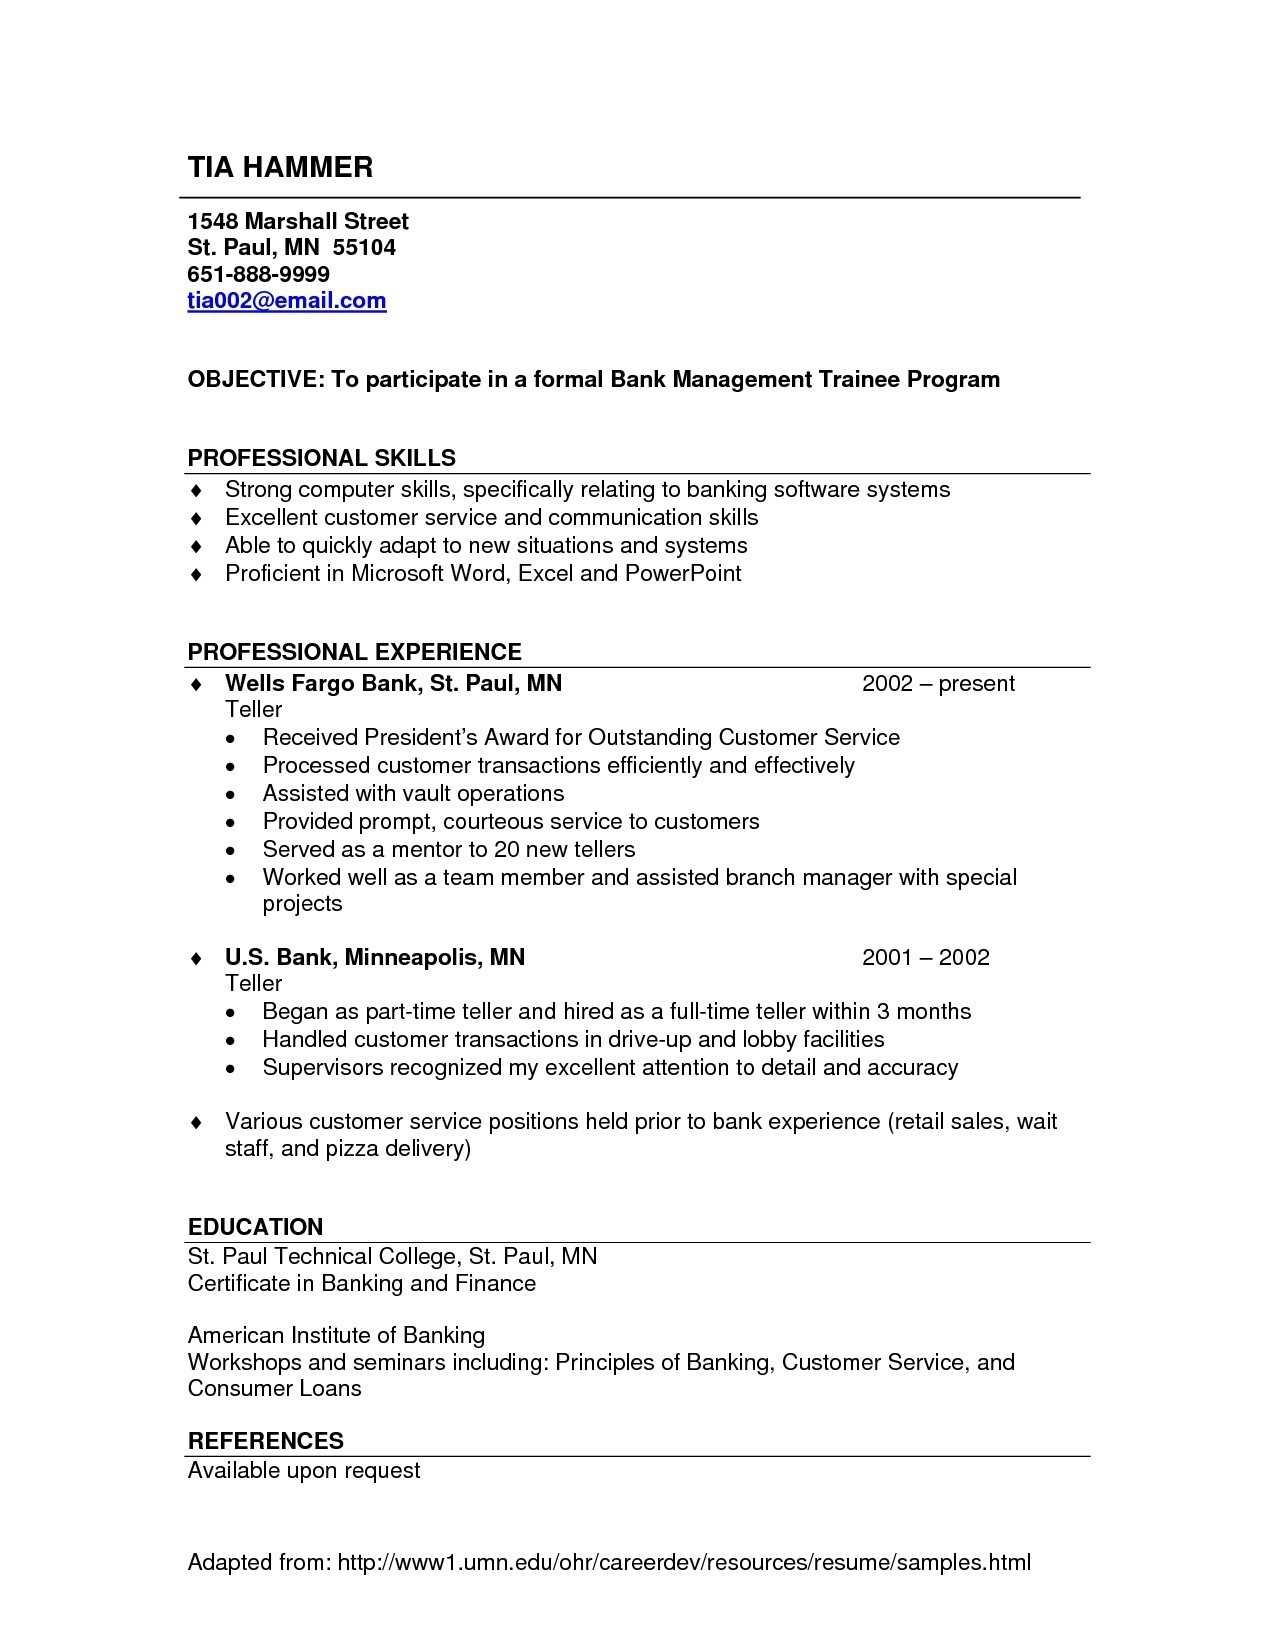 Personal Banker Resume - Banking Resume Sample Awesome Banking Resumes Templates Nanny Resume